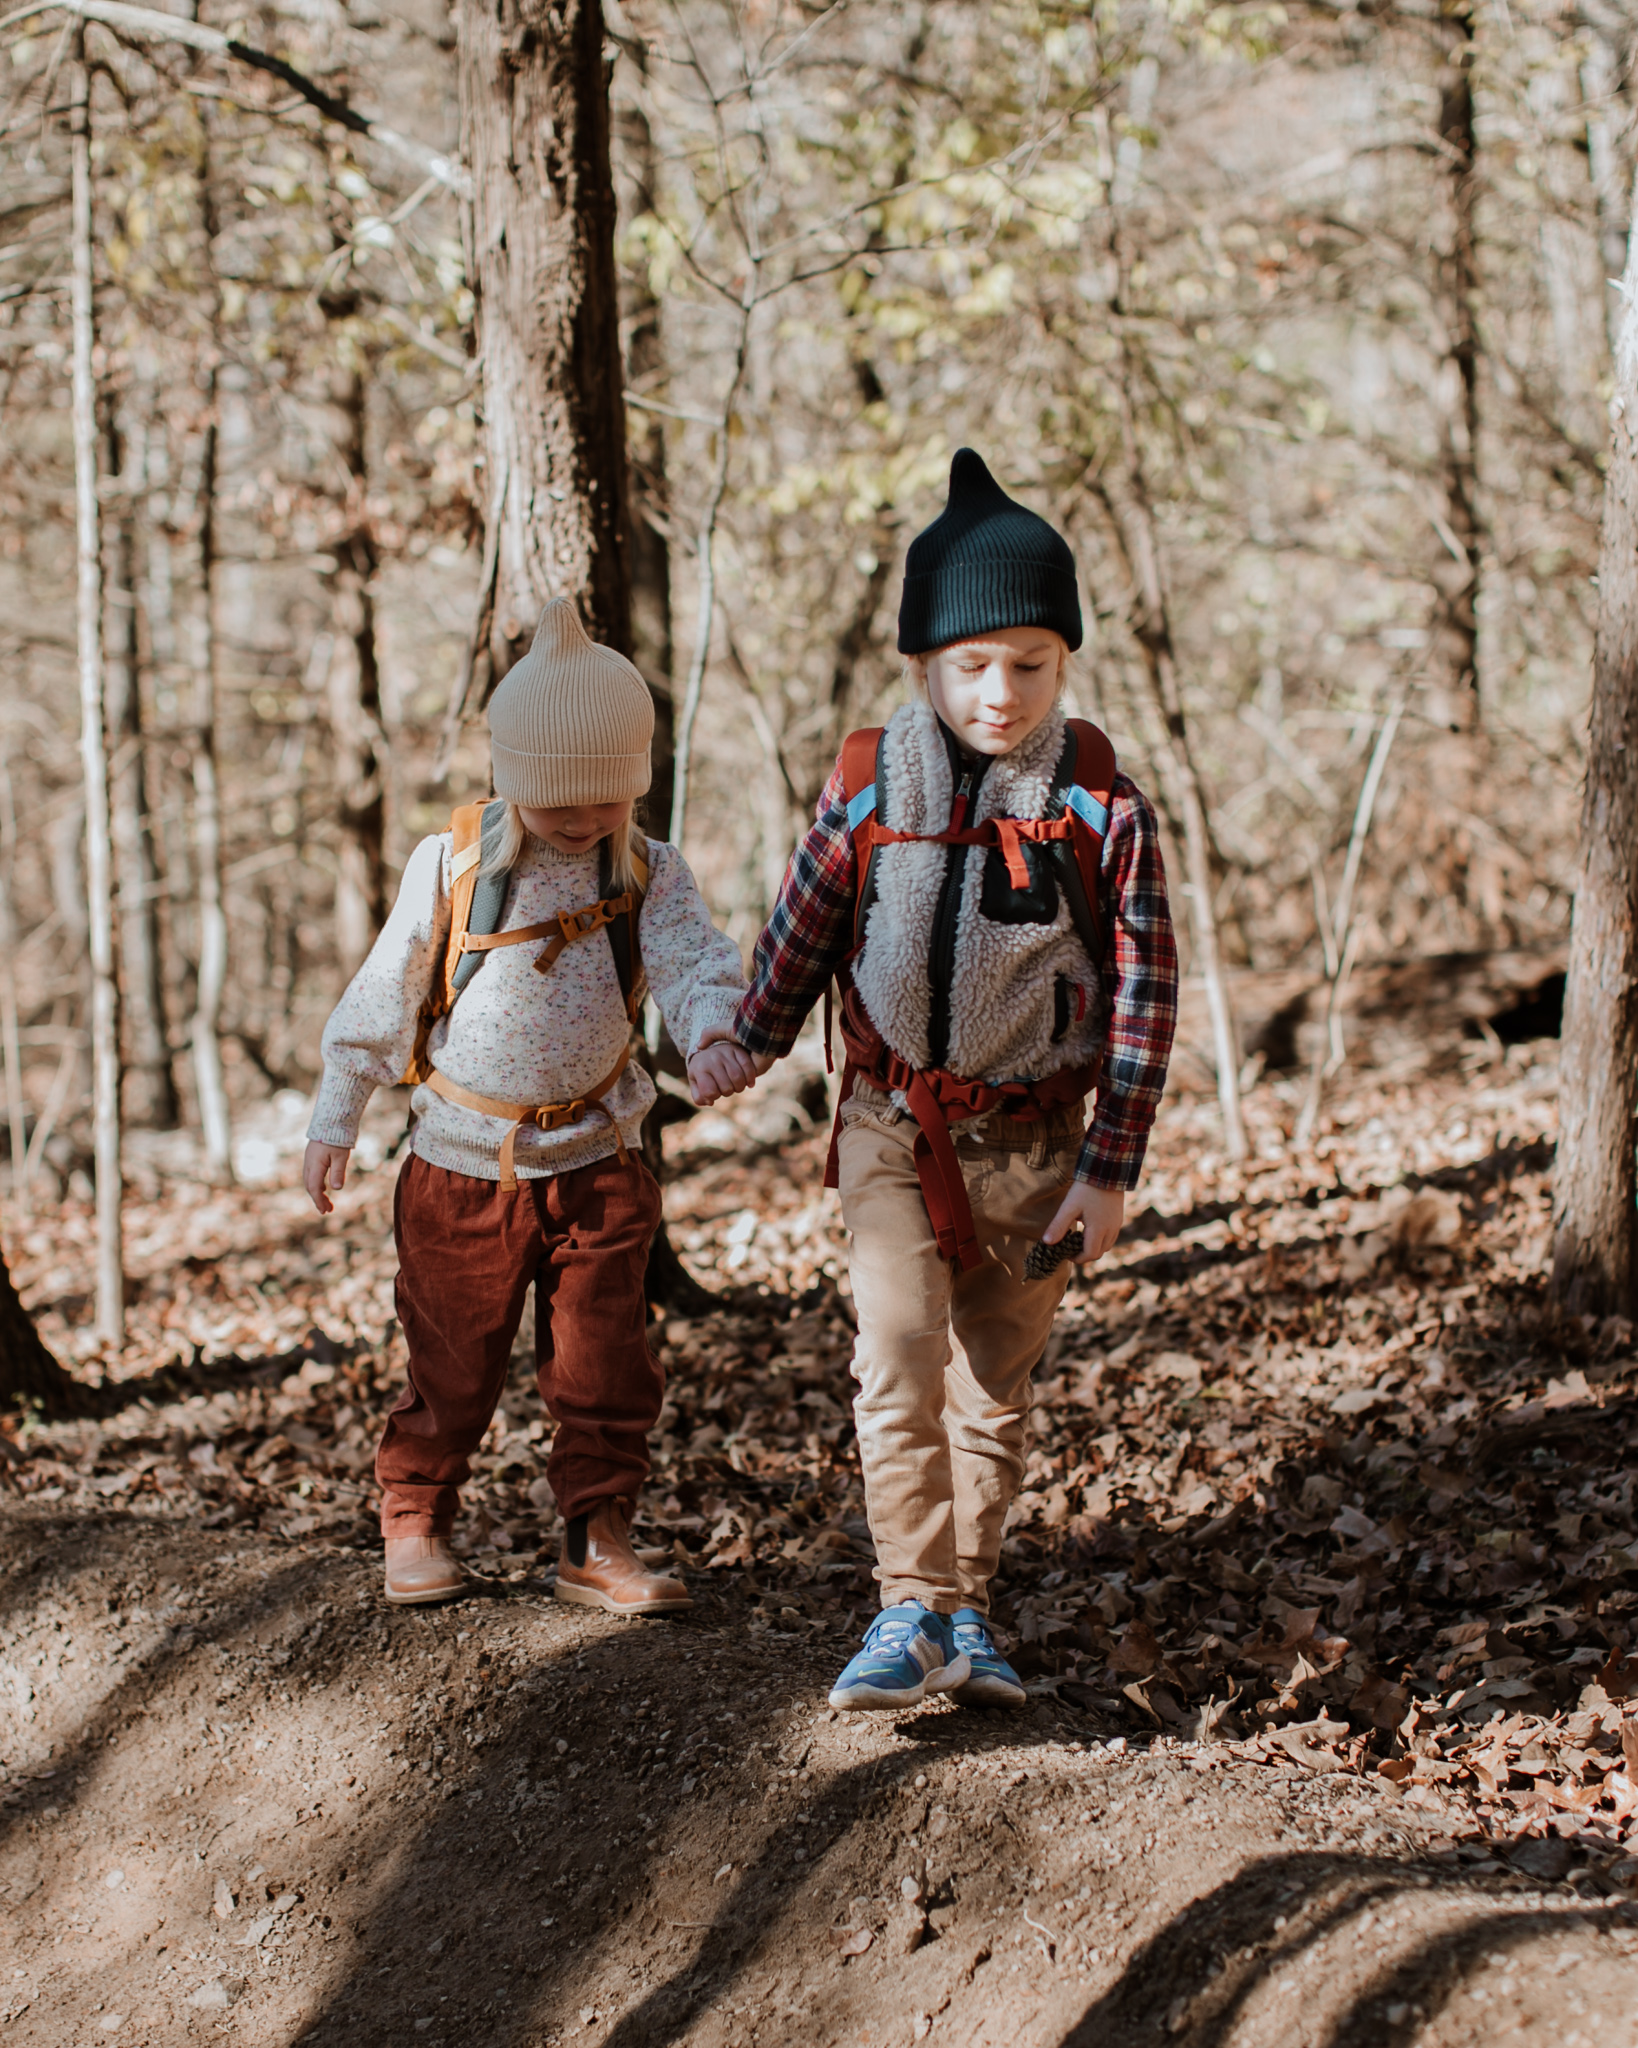 Two children hiking in a bare winter forest.